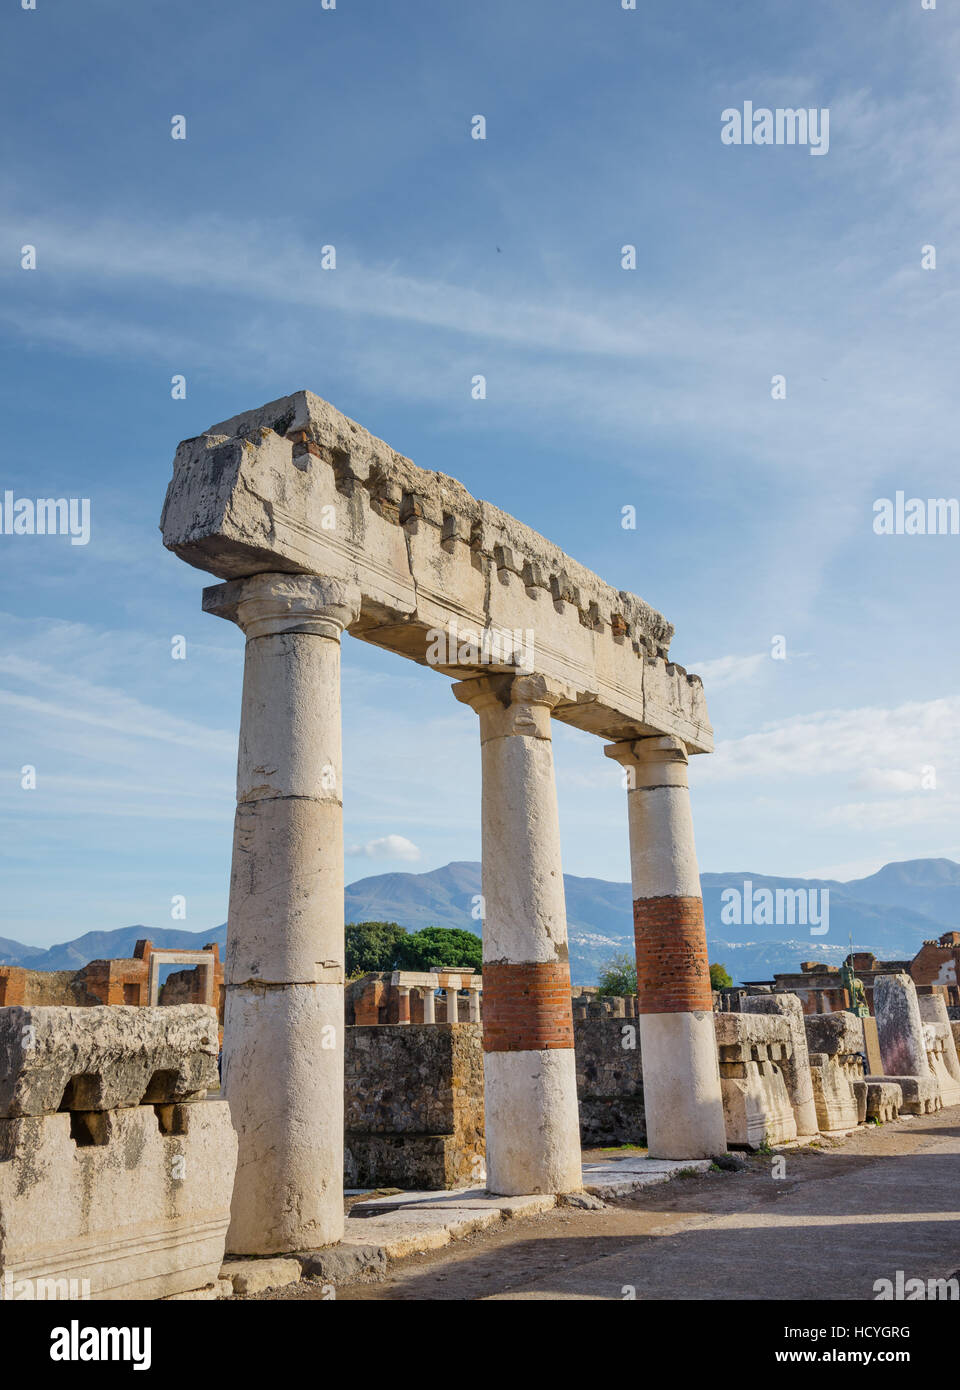 POMPEII, ITALY- NOVEMBER 13, 2016: Pompeii ruins was declared in 1997 by UNESCO World Heritage Site. - Stock Image